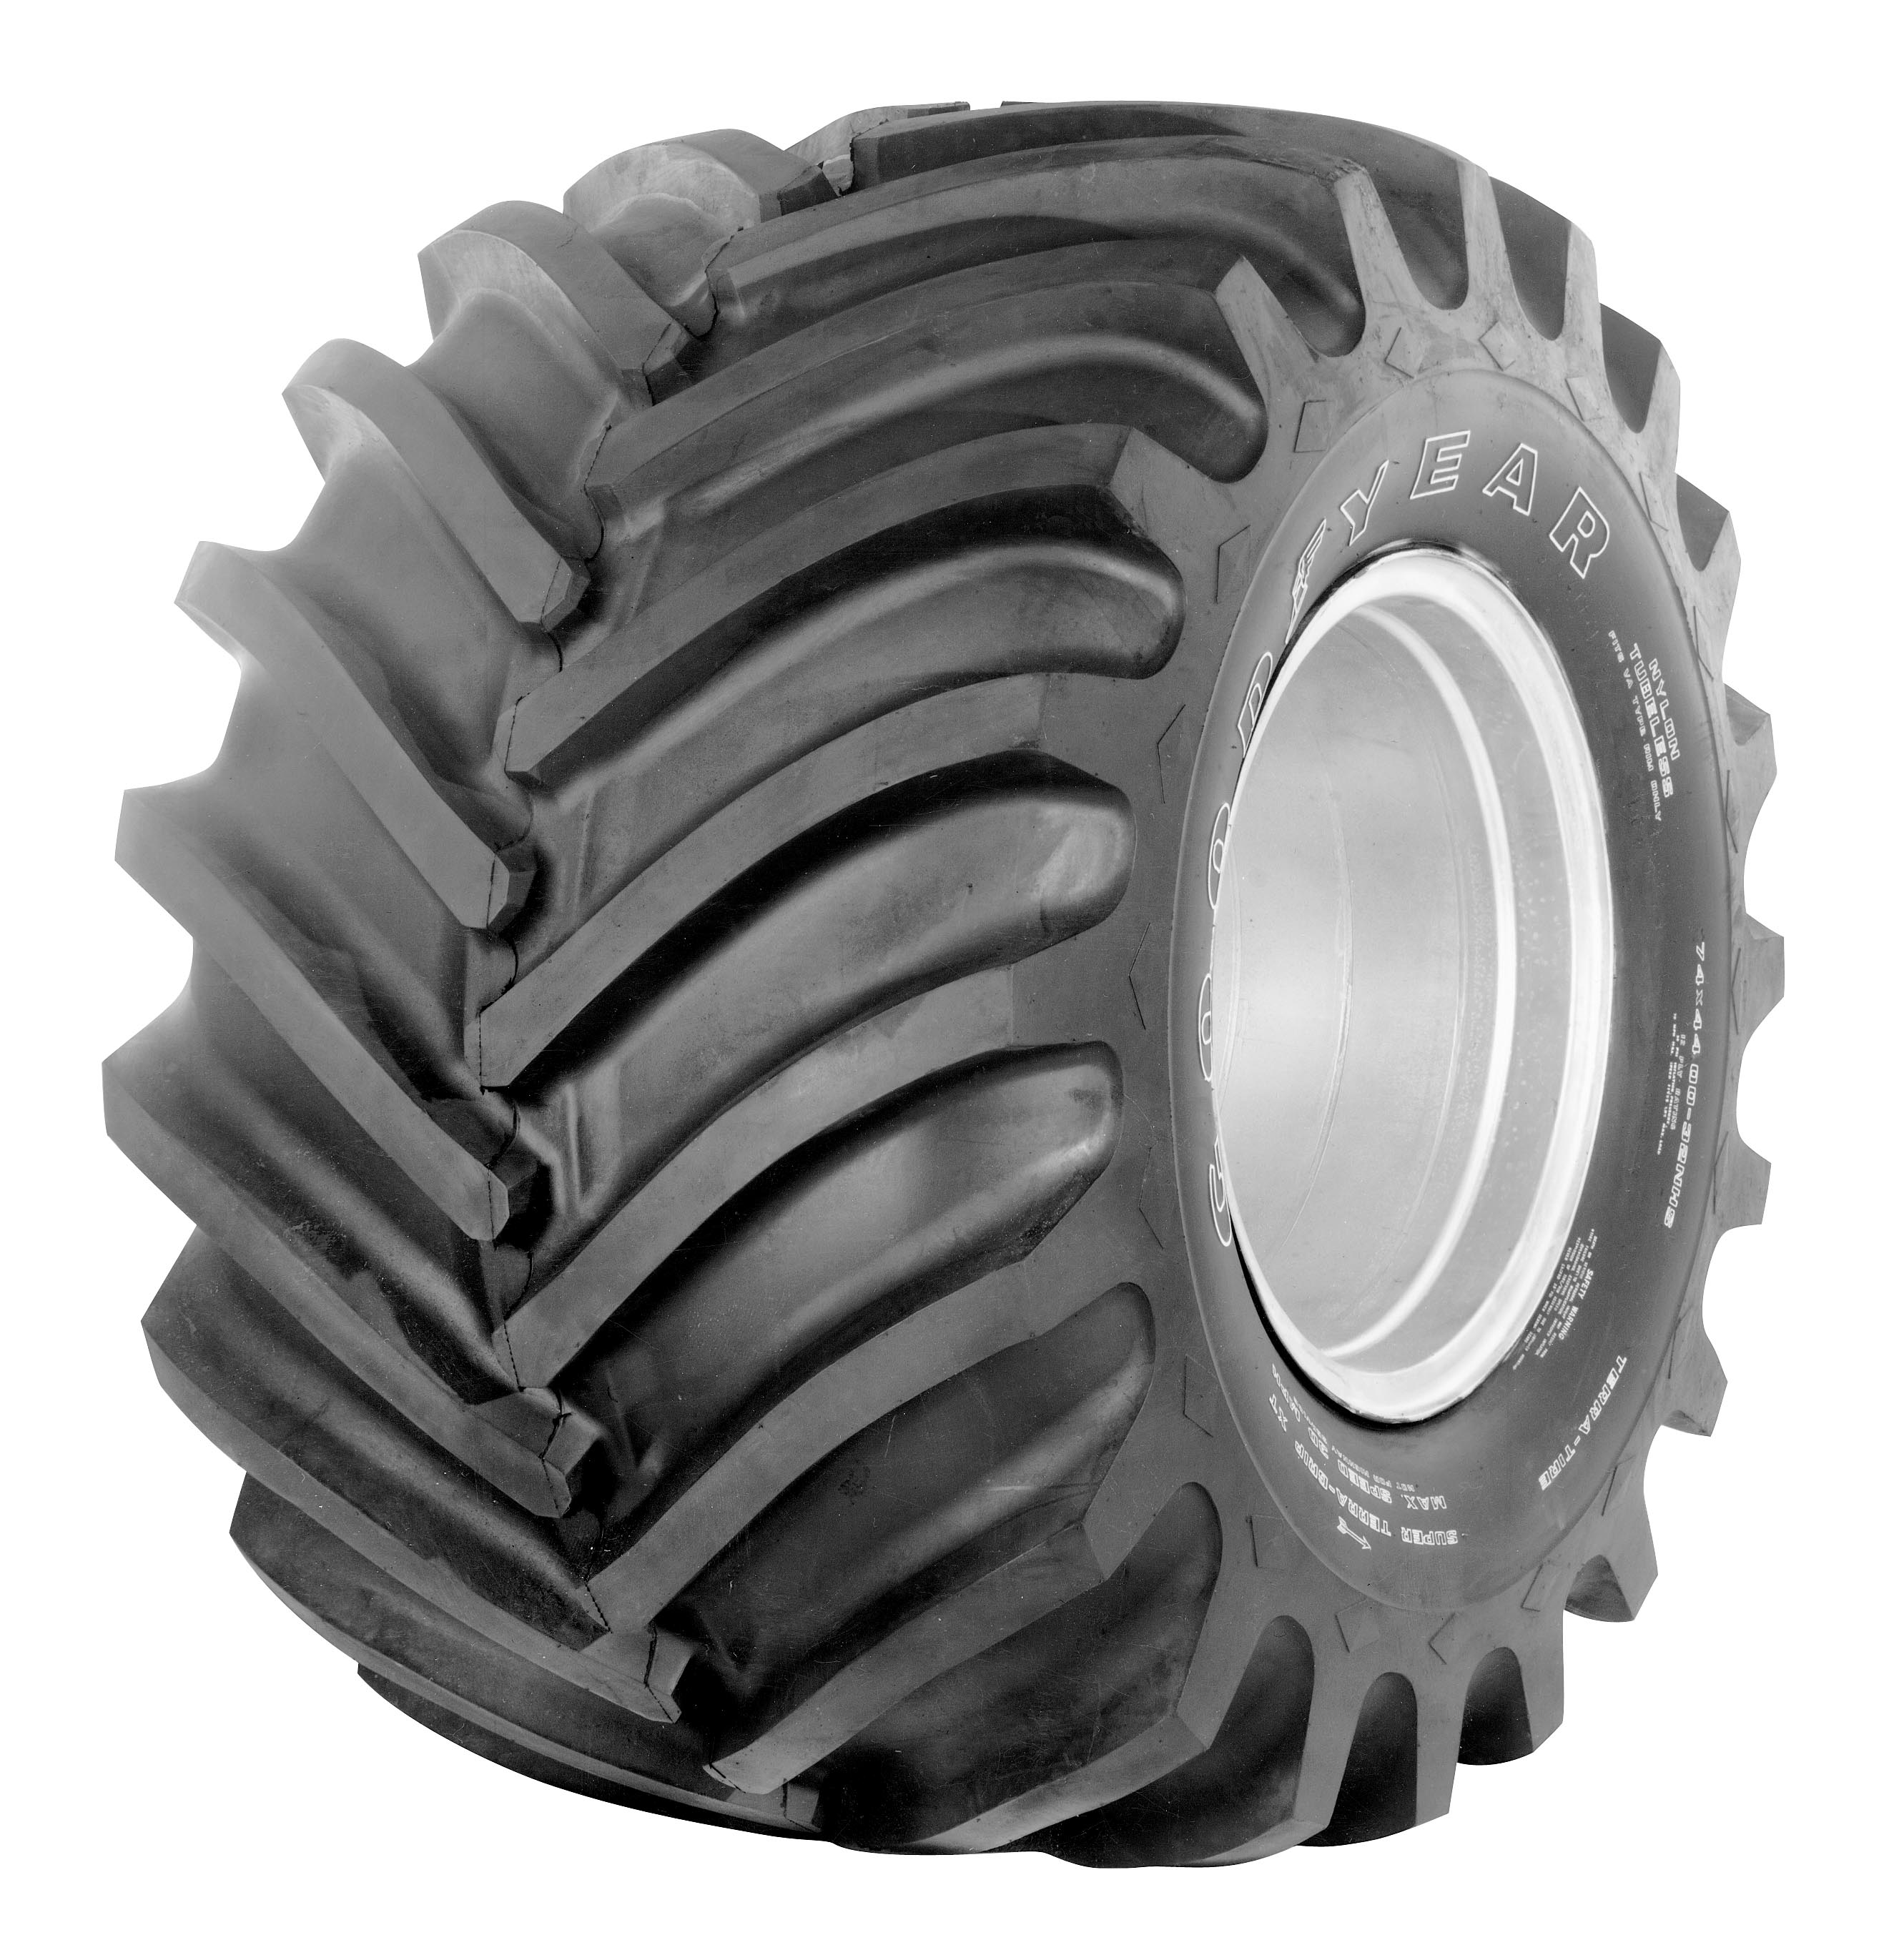 SUPER TERRA GRIP XT RADIAL HF-3